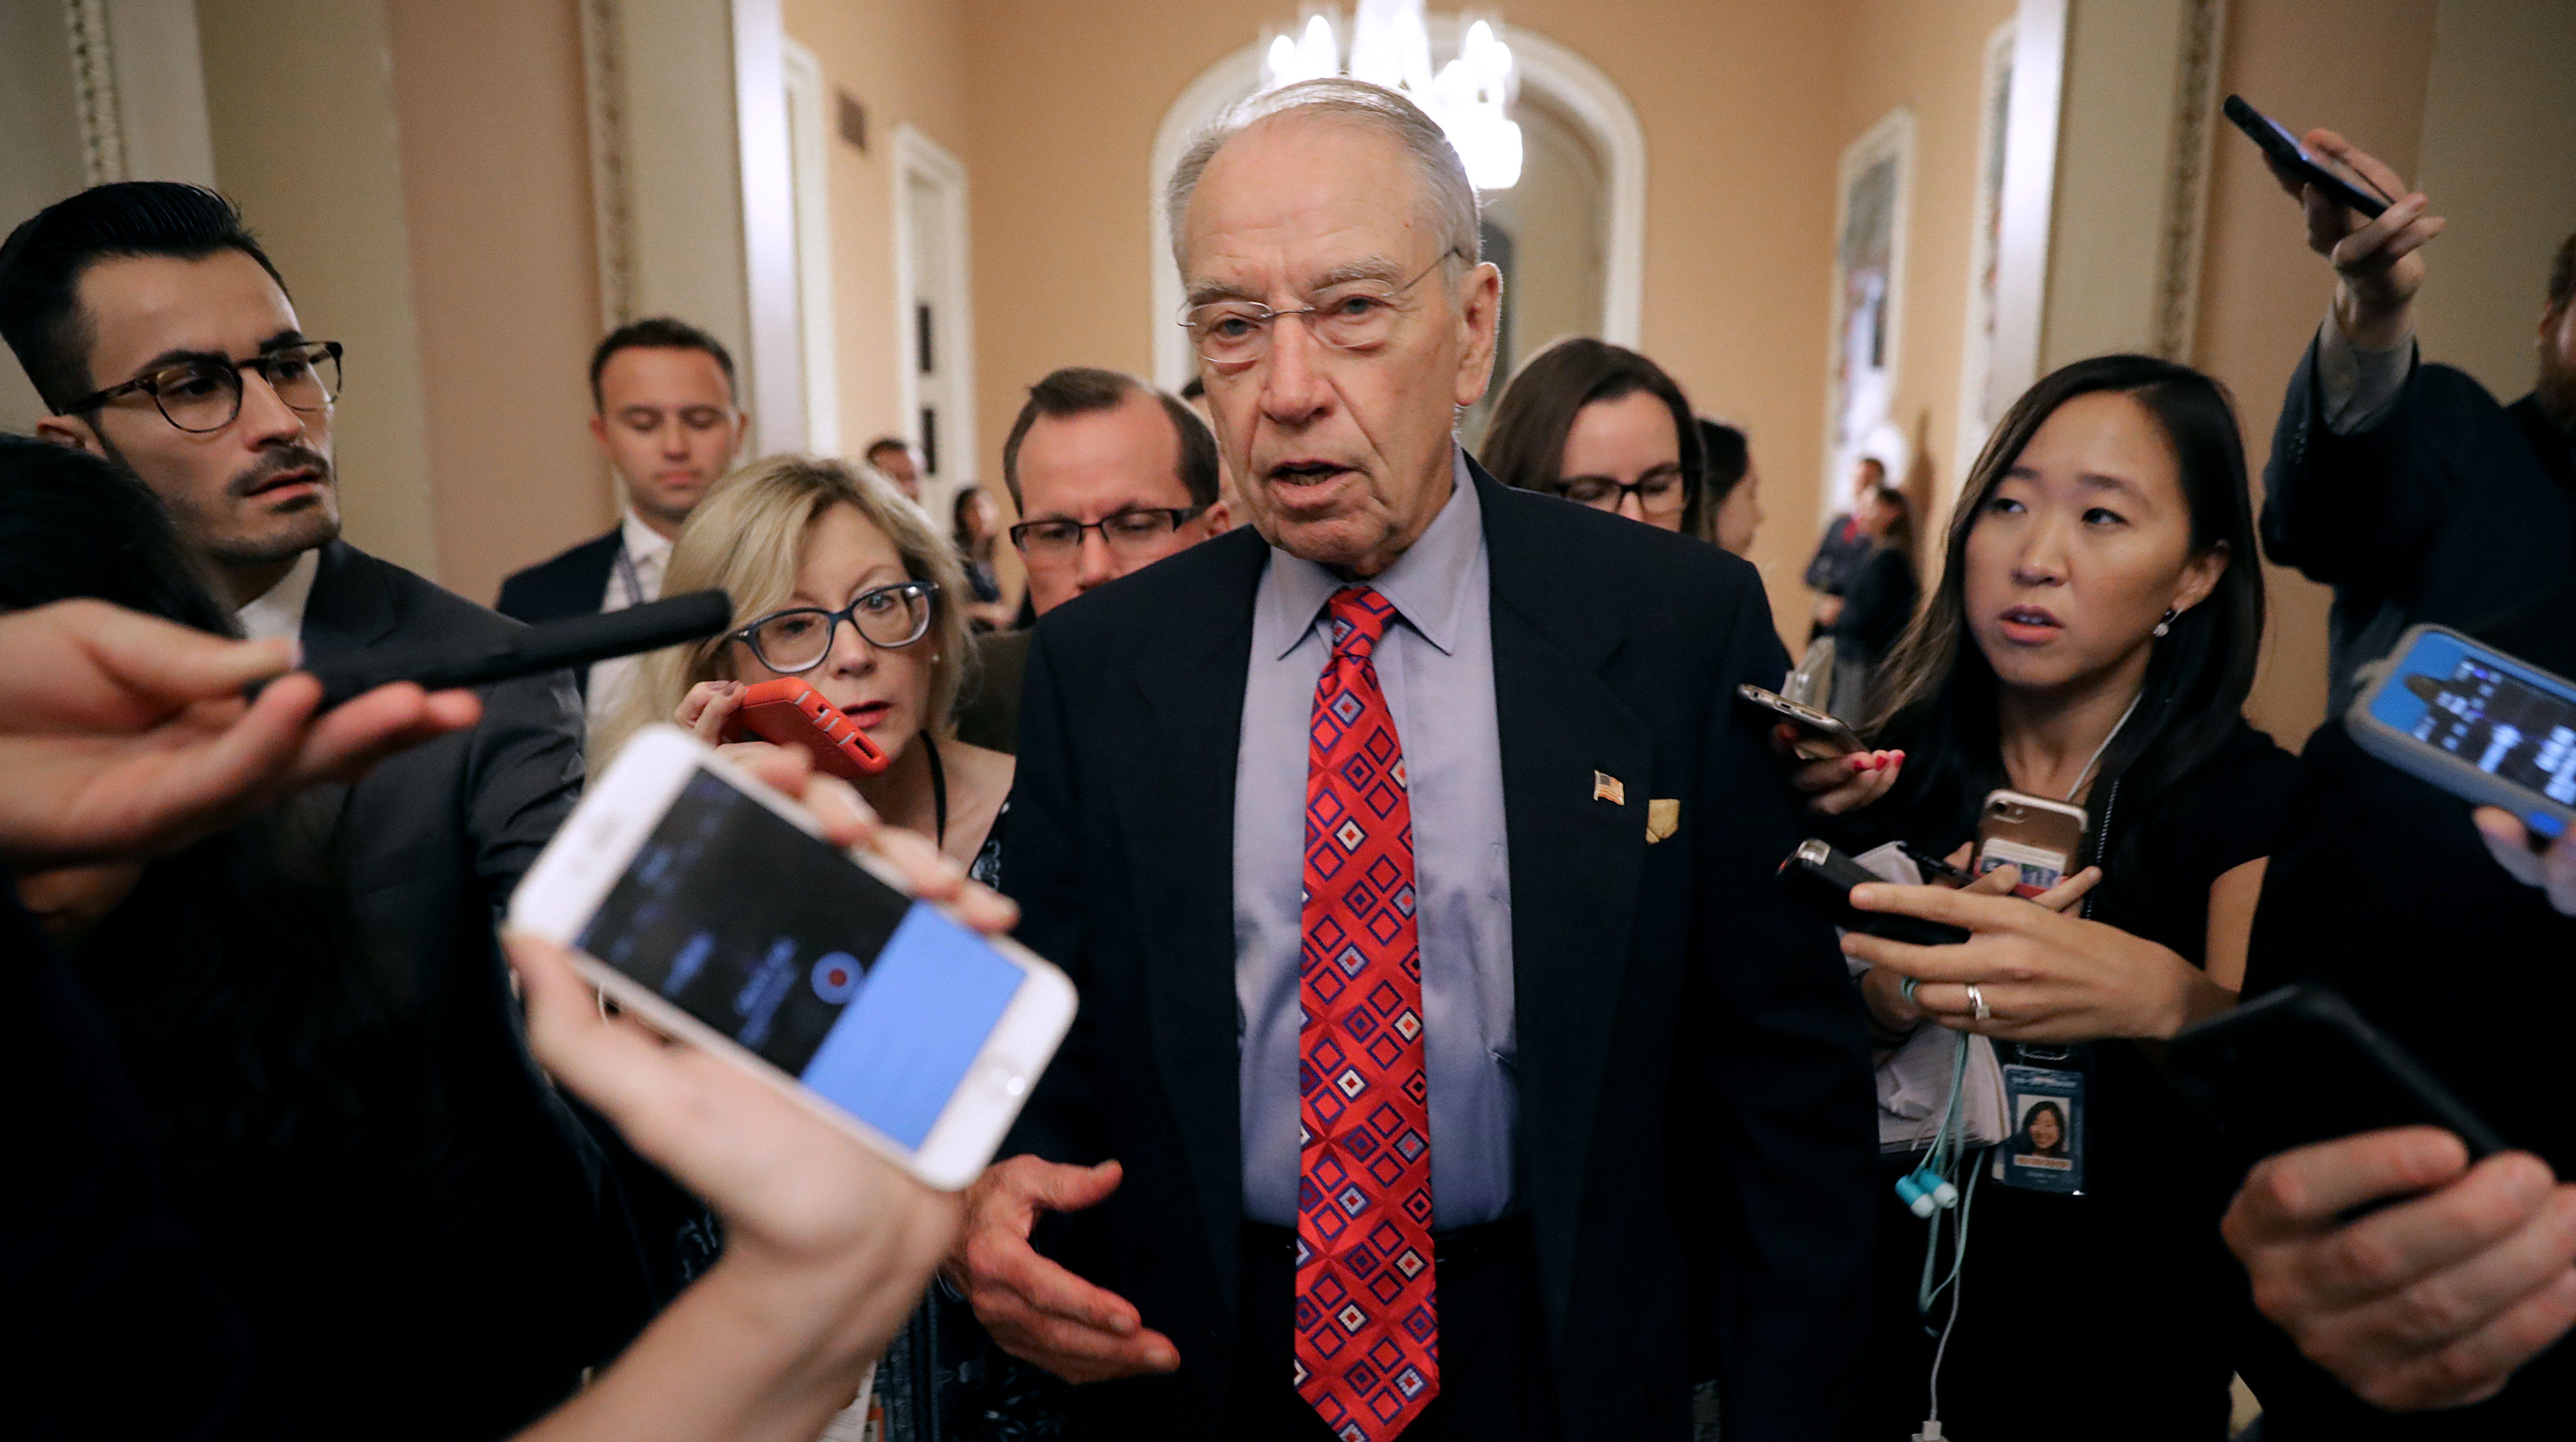 Senate Judiciary Committee Chairman Chuck Grassley, R-Iowa, speaks with reporters as he leaves a meeting in Senate Majority Leader Mitch McConnell's office at the U.S. Capitol on Tuesday.